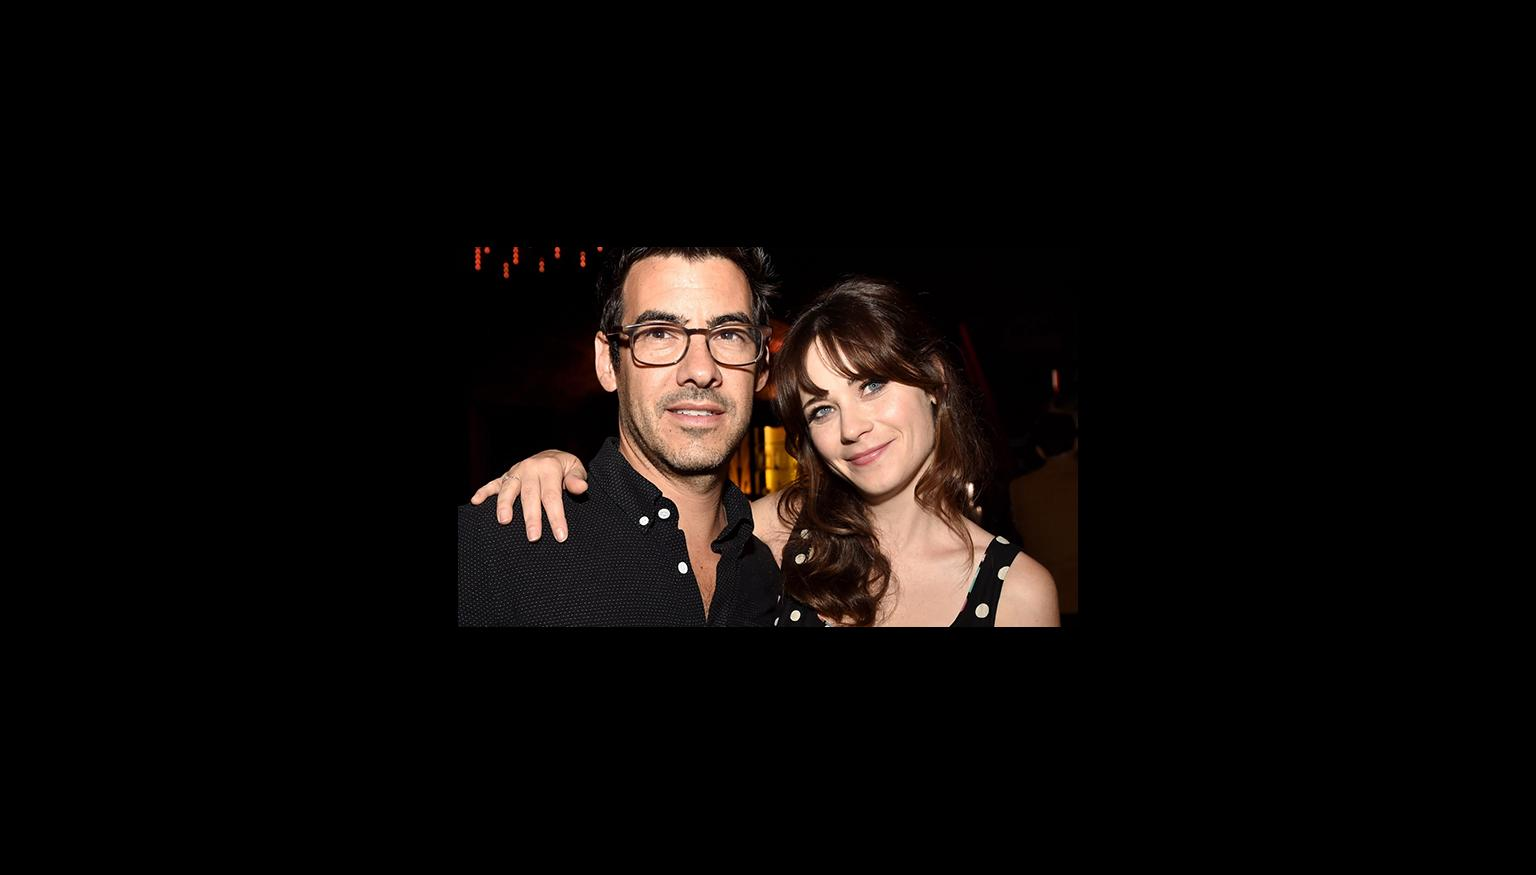 Zooey Deschanel and fiancé welcome beautiful baby girl!   smooth